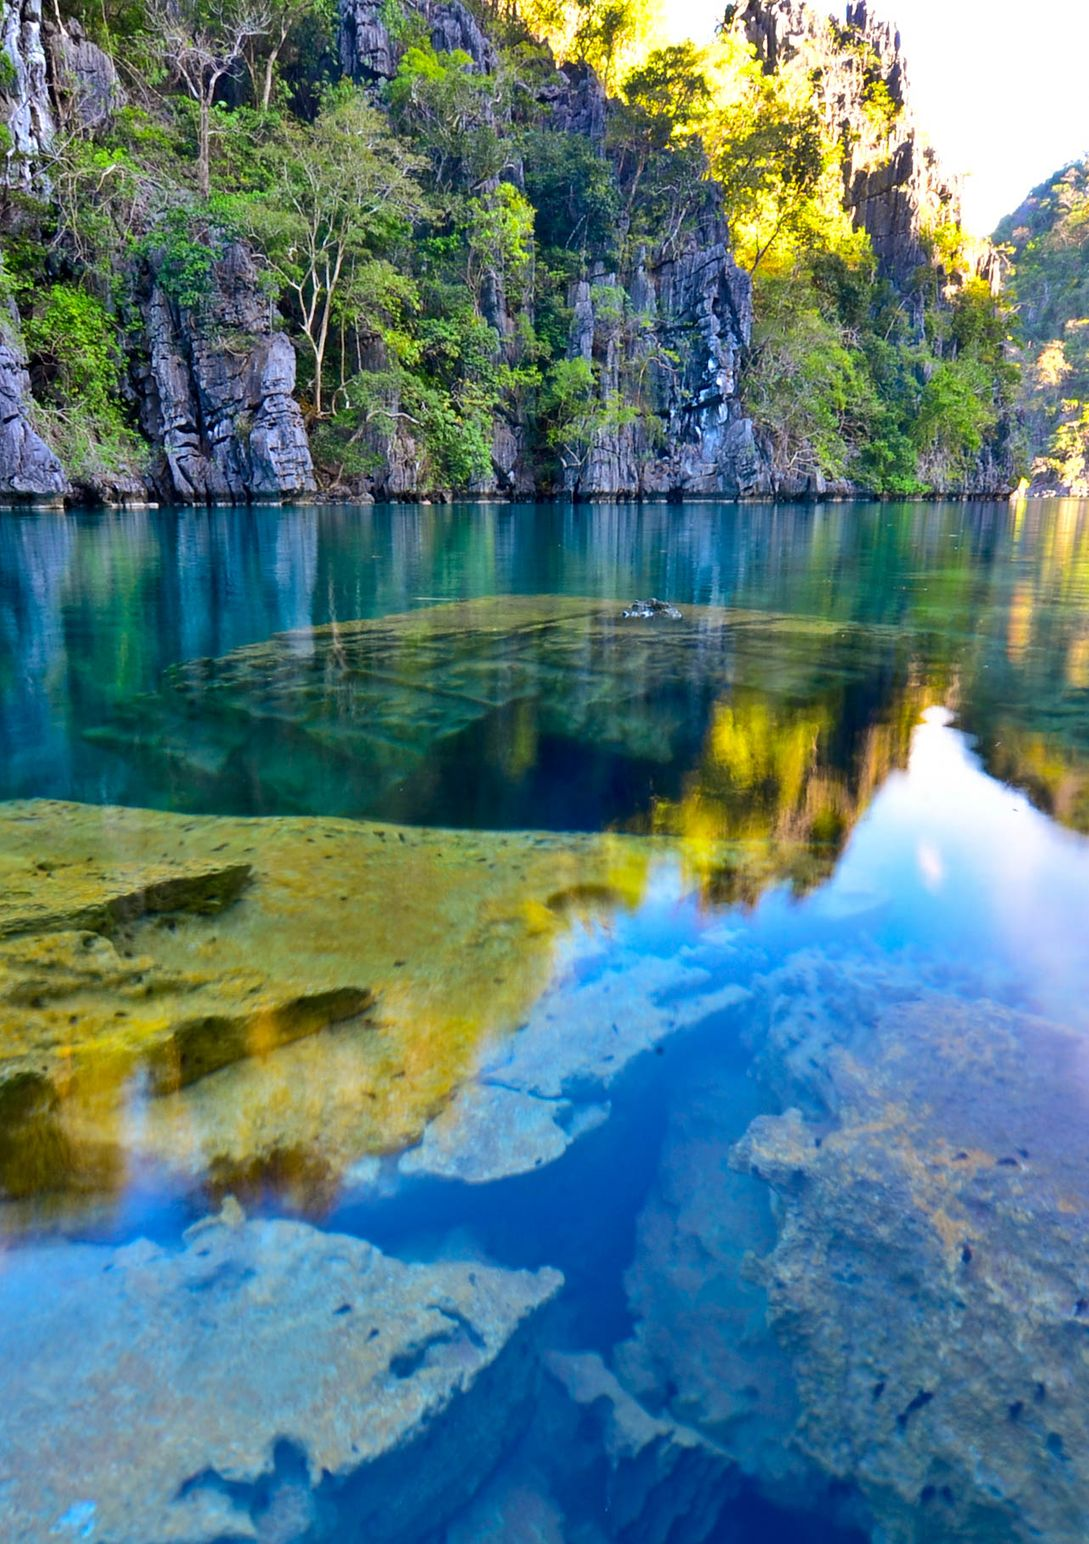 Limestone cliffs overhung with vegetation reflected on a body of crystal clear water